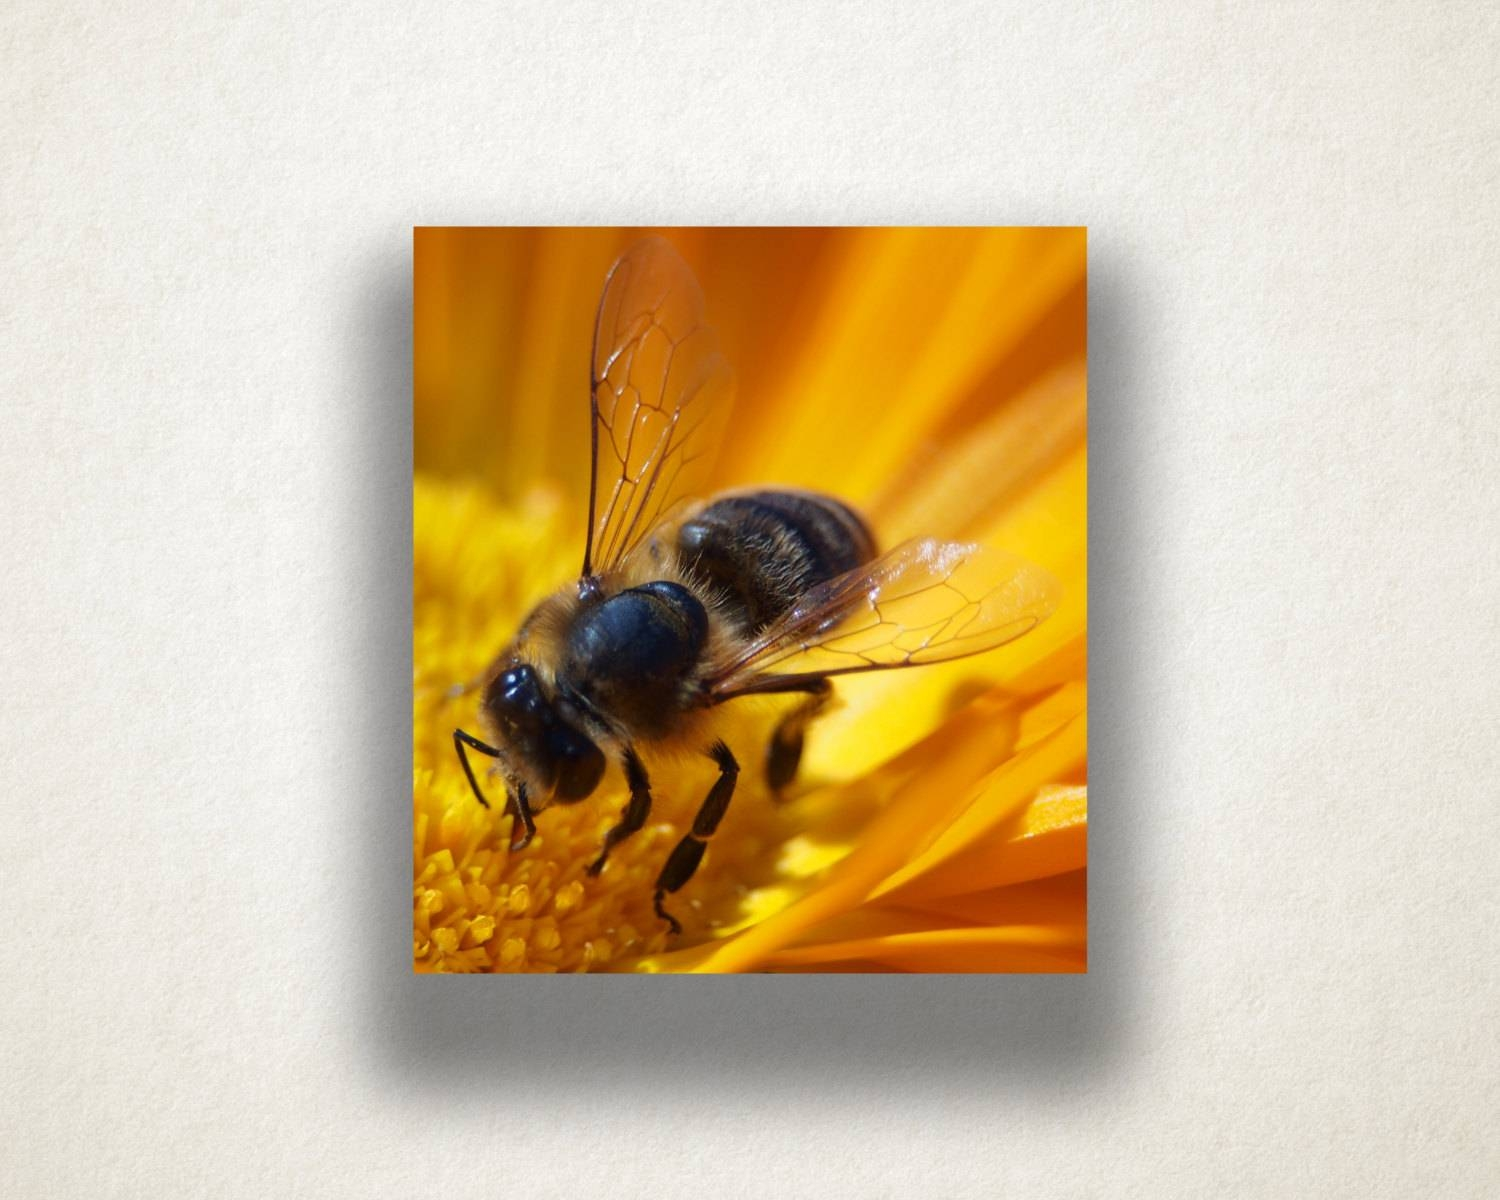 Flower And Bee Canvas Art, Bee Close Up Wall Art, Insect Canvas Throughout Most Recently Released Insect Wall Art (Gallery 11 of 30)